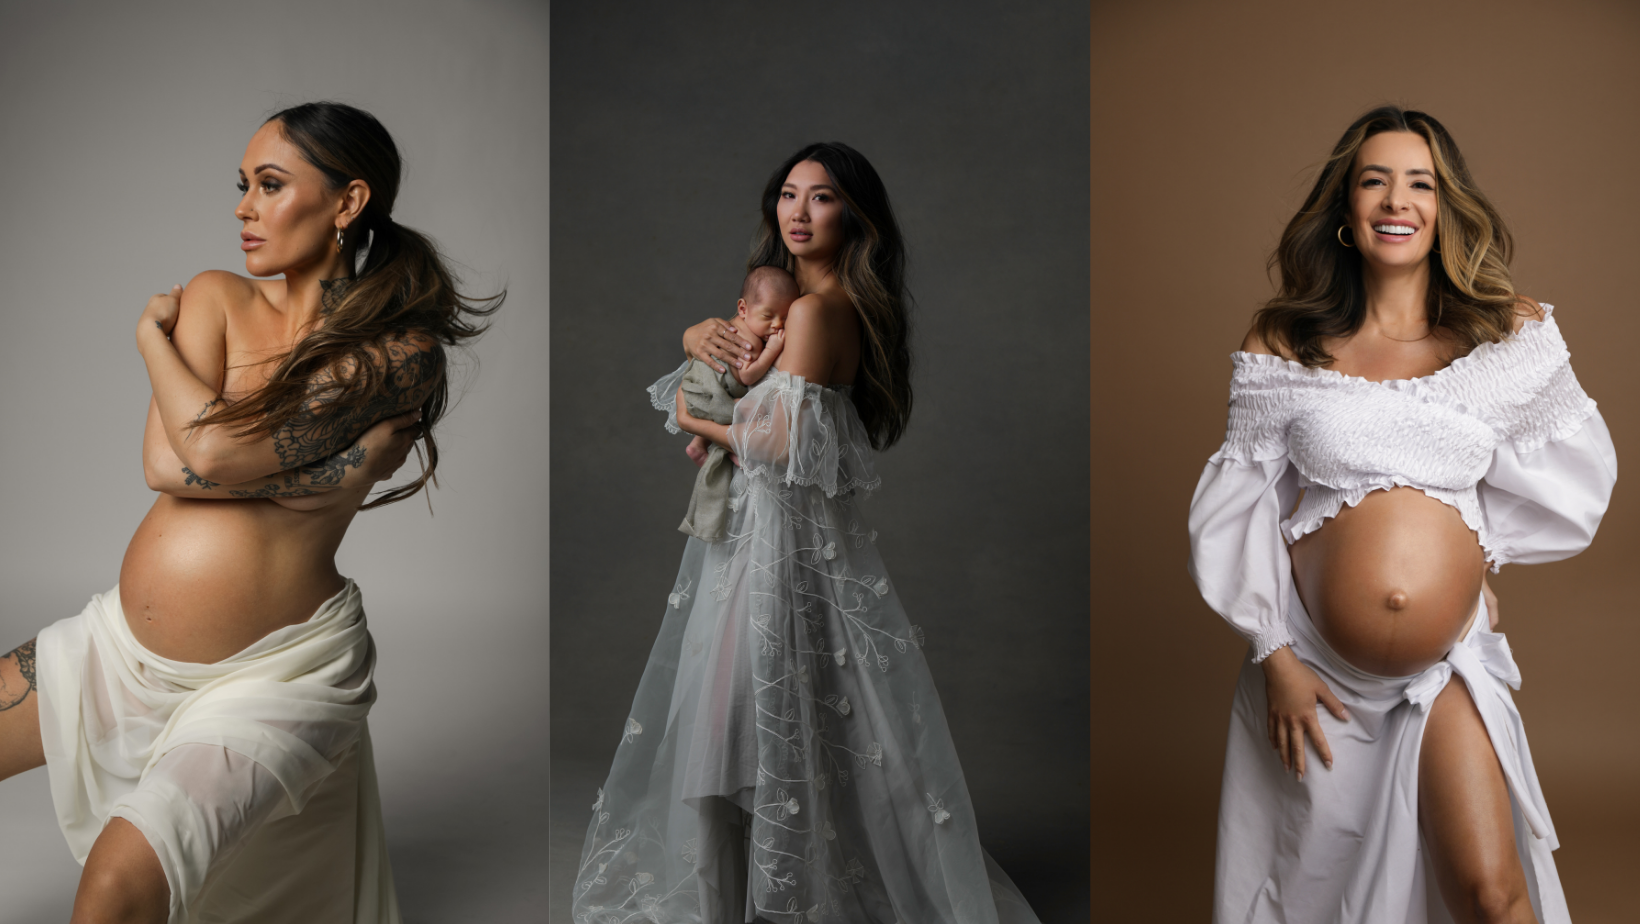 Luela Kaba's Custom Dresses, Backdrops, and Photoshoots